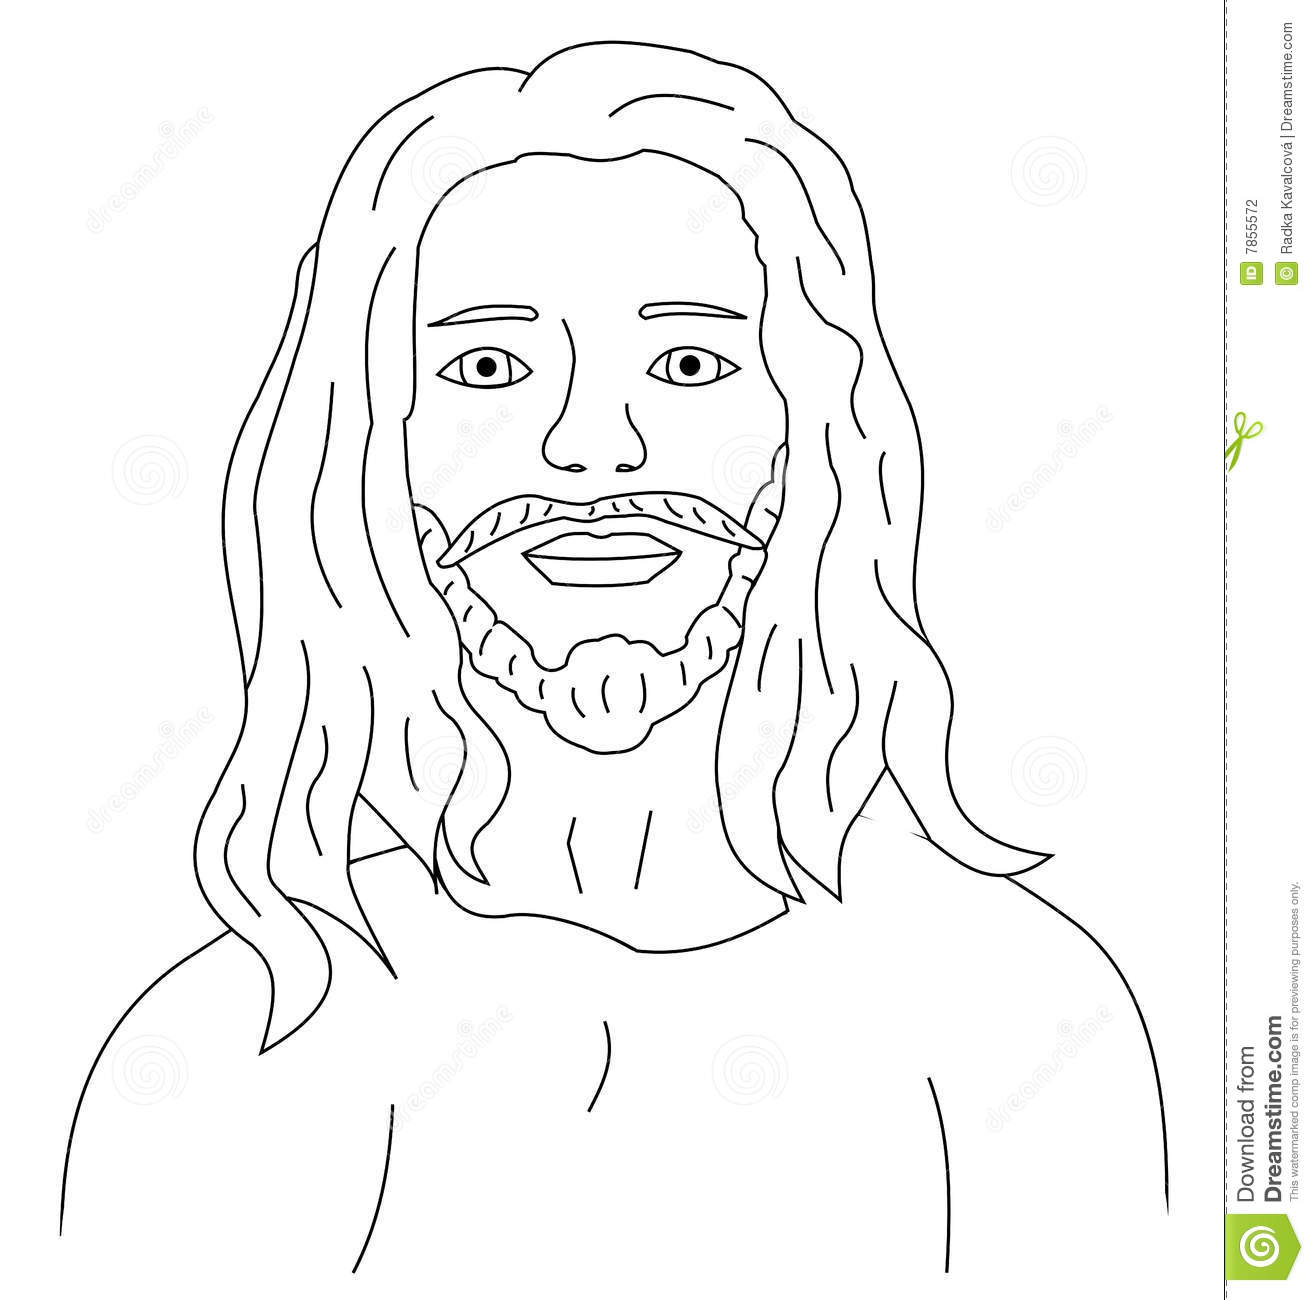 jesus face coloring page jesus face coloring page sketch coloring page page jesus face coloring